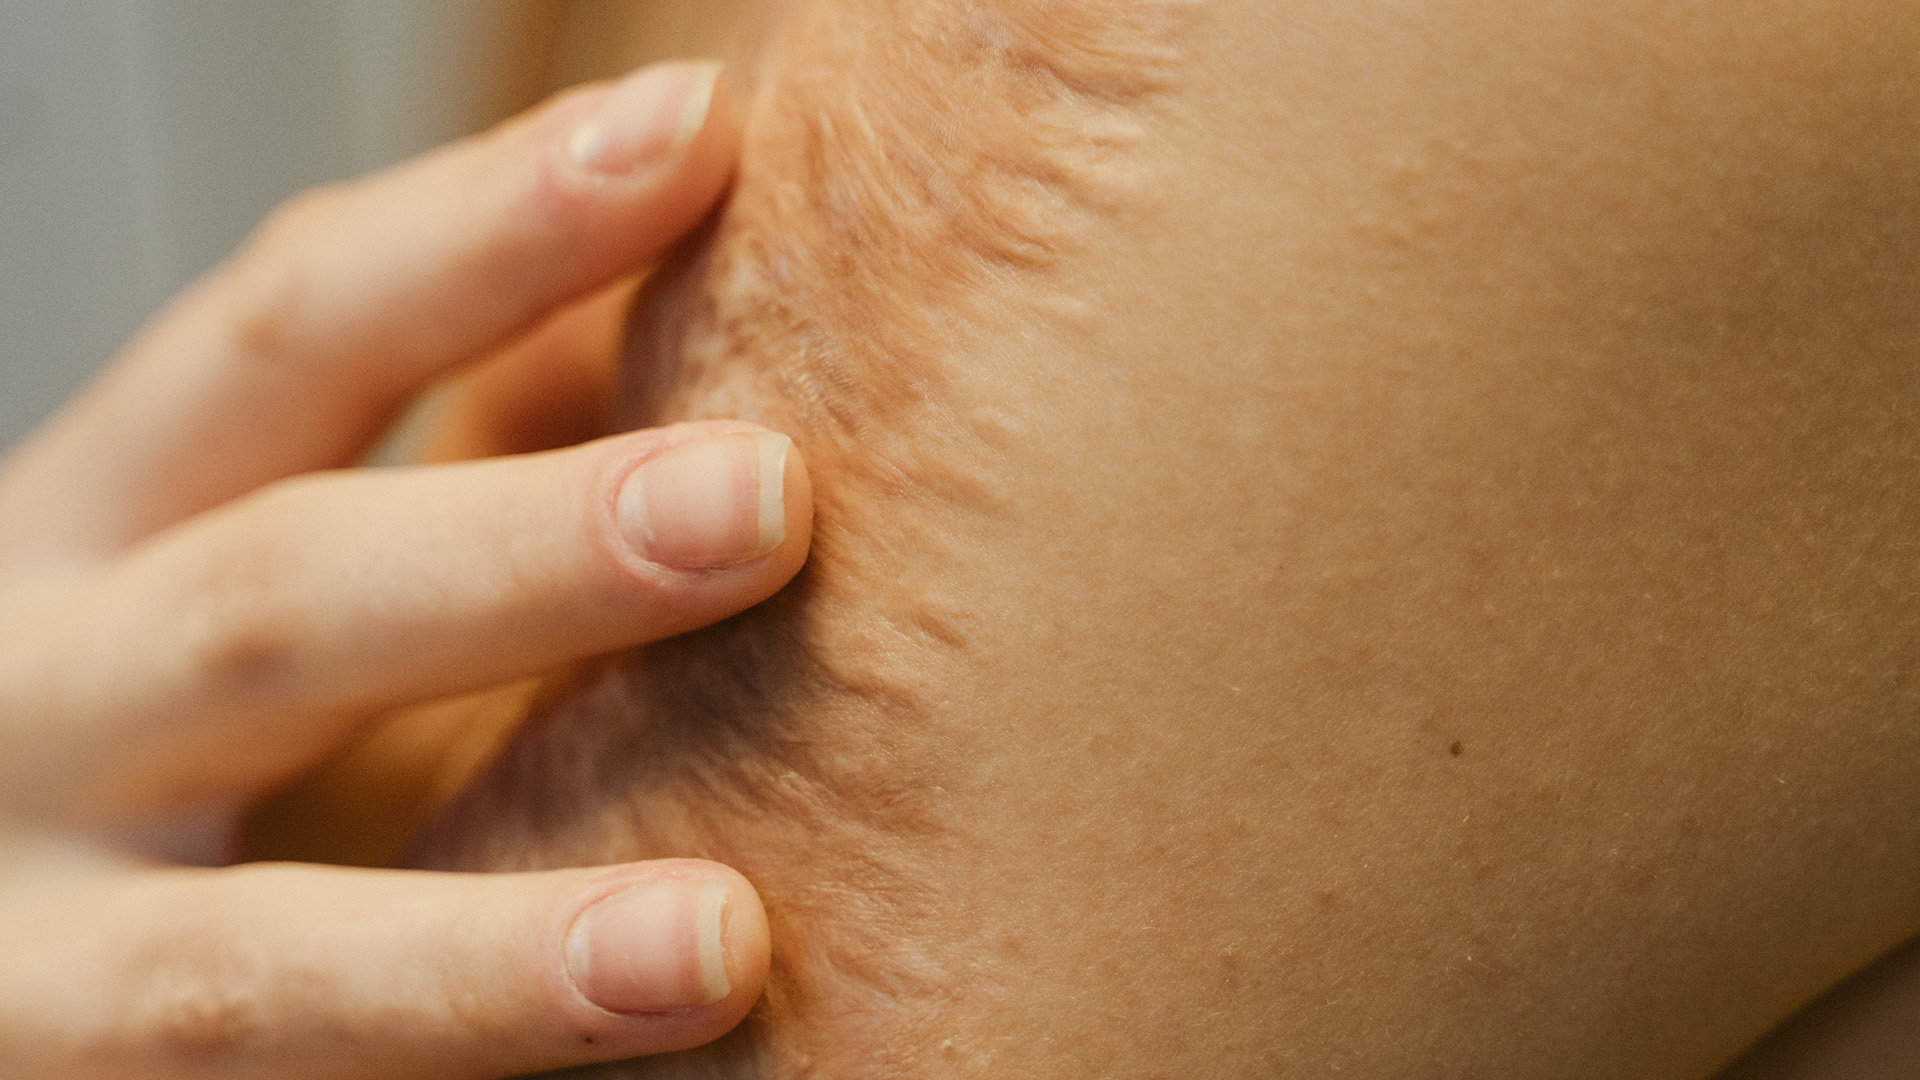 Studies Reveal Light Therapy May Accelerate Healing Of Burns